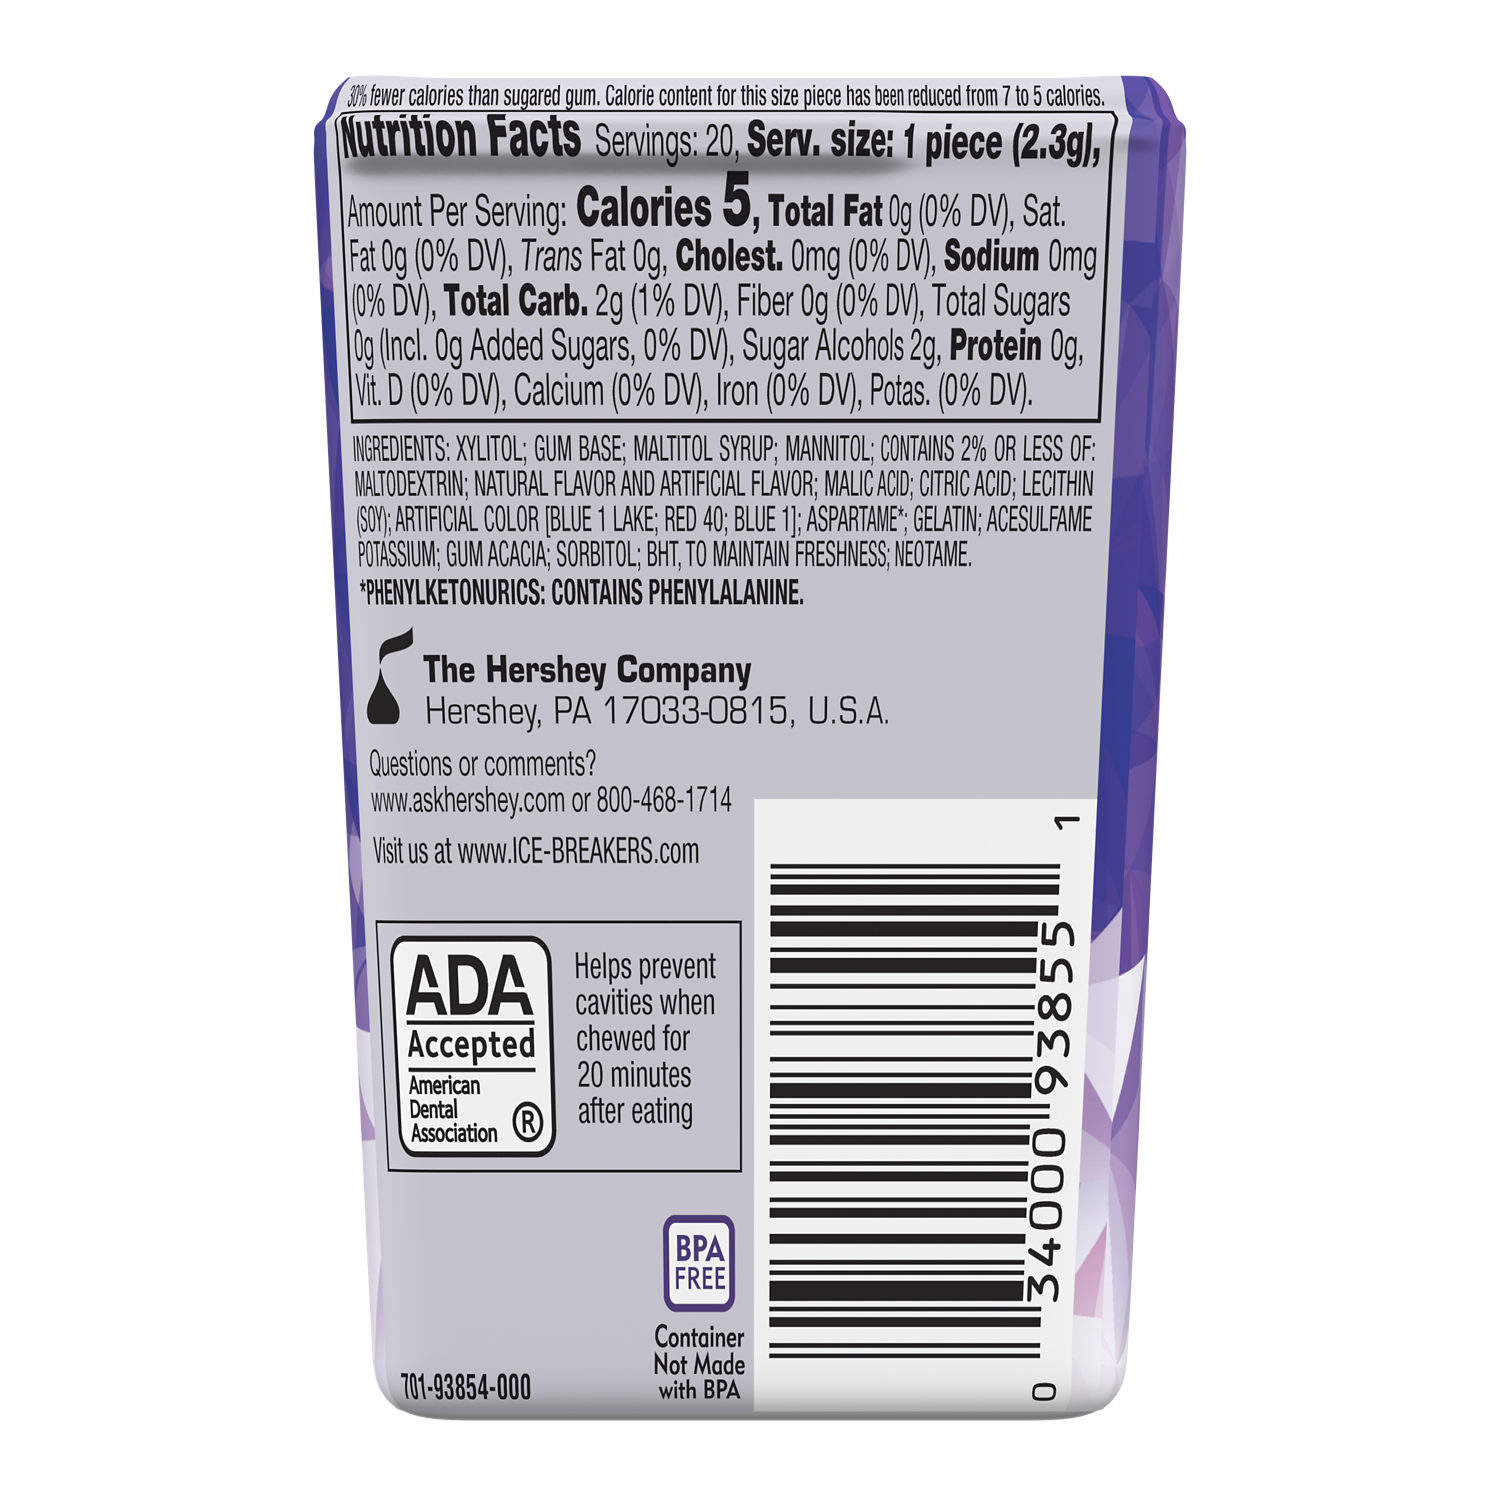 ICE BREAKERS ICE CUBES ARCTIC GRAPE Sugar Free Gum, 1.62 oz thin pack, 20 pieces - Back of Package